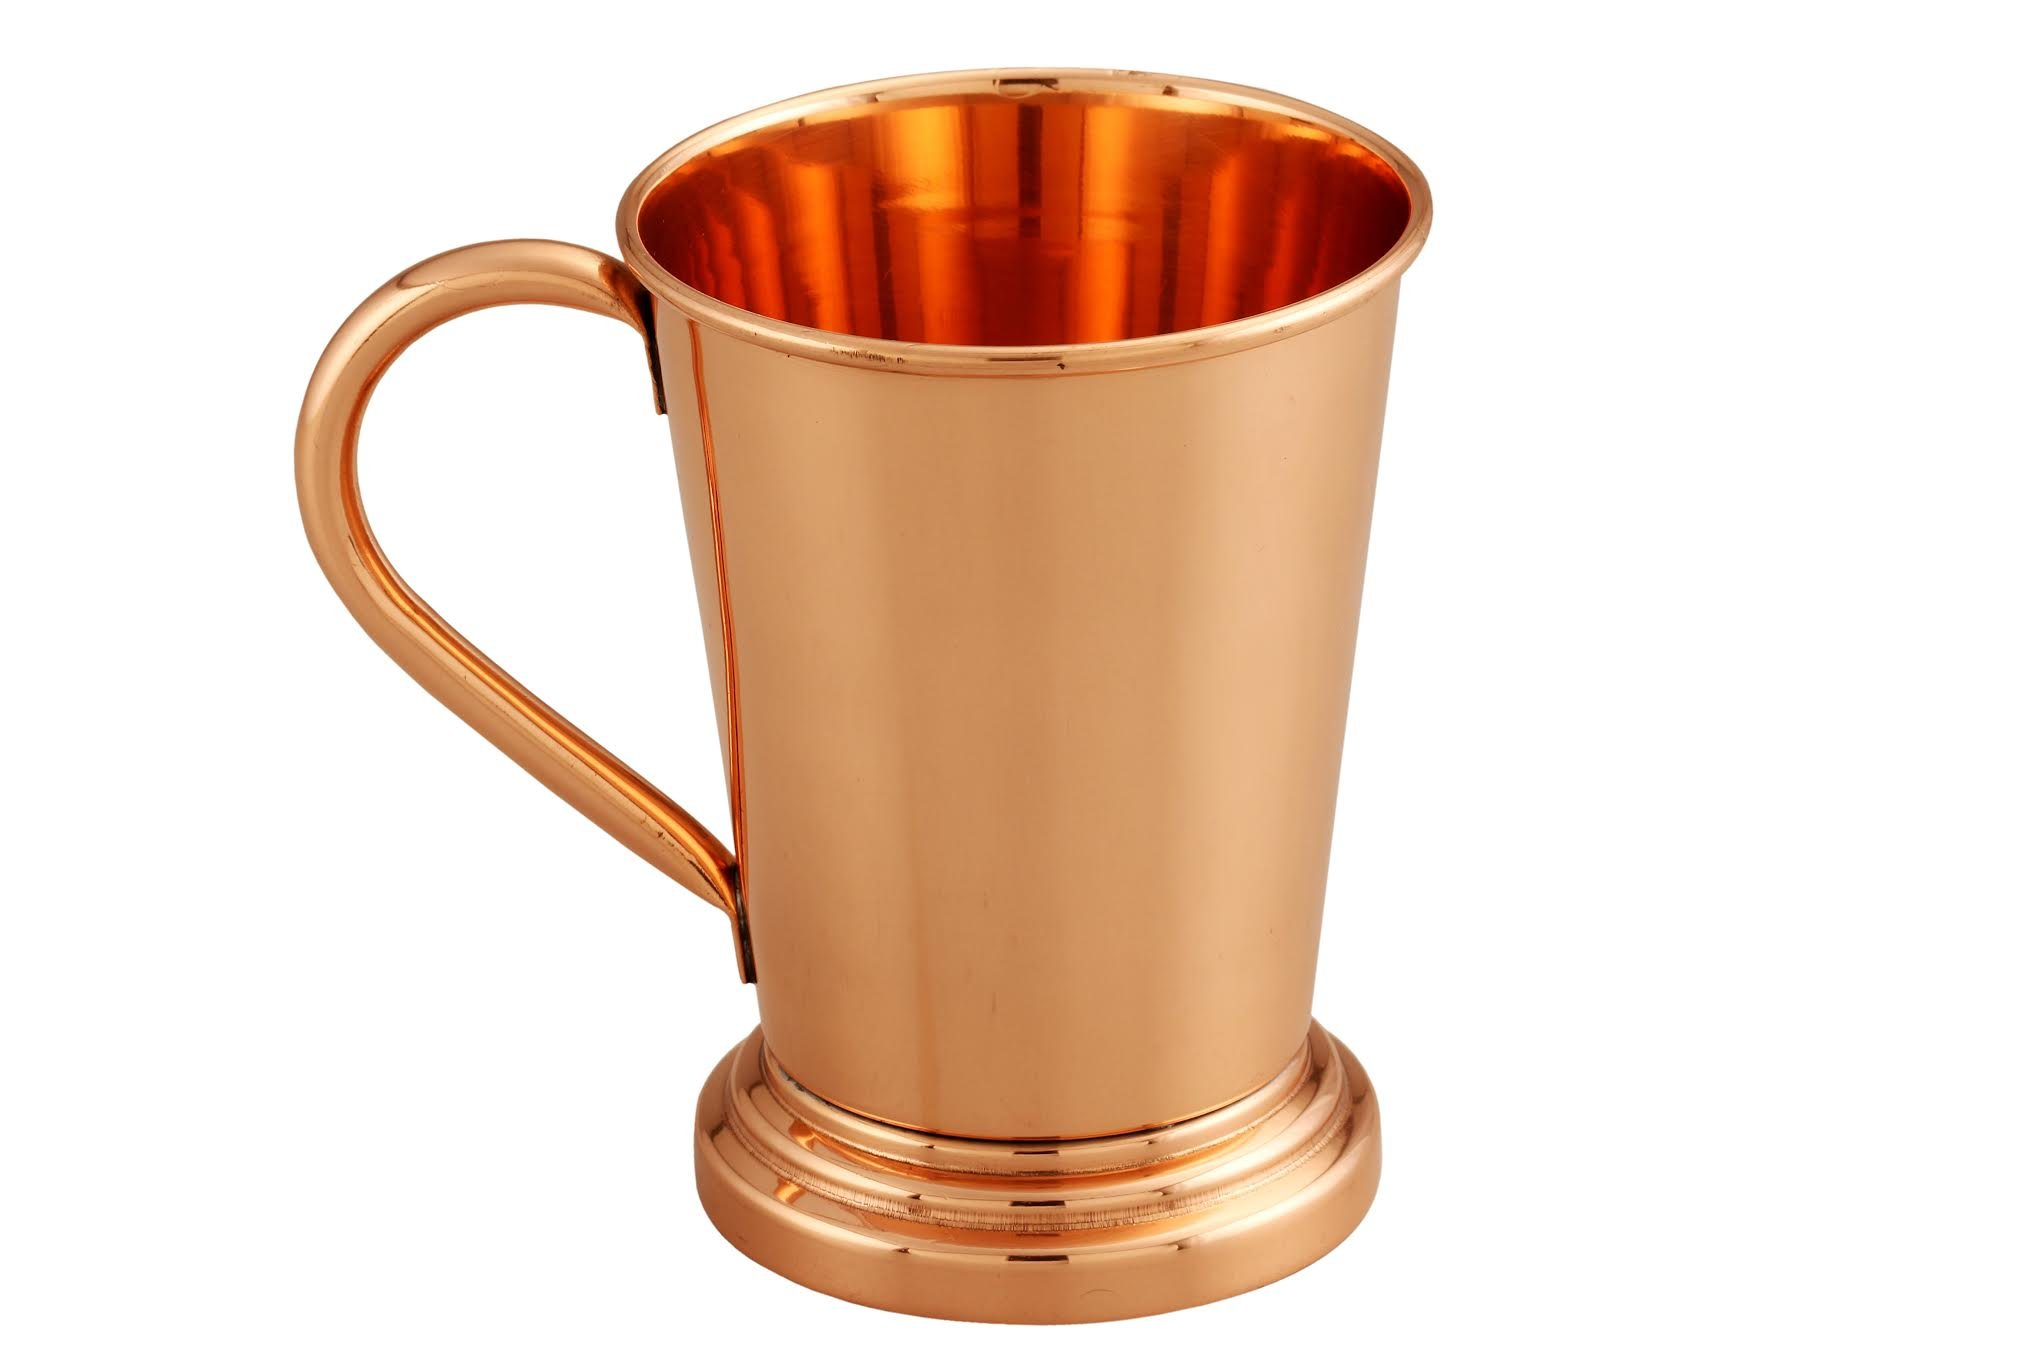 Melange 100% Authentic Copper Artisan Collection Moscow Mule Mug, Size-16 Oz, Set of 24 Mugs